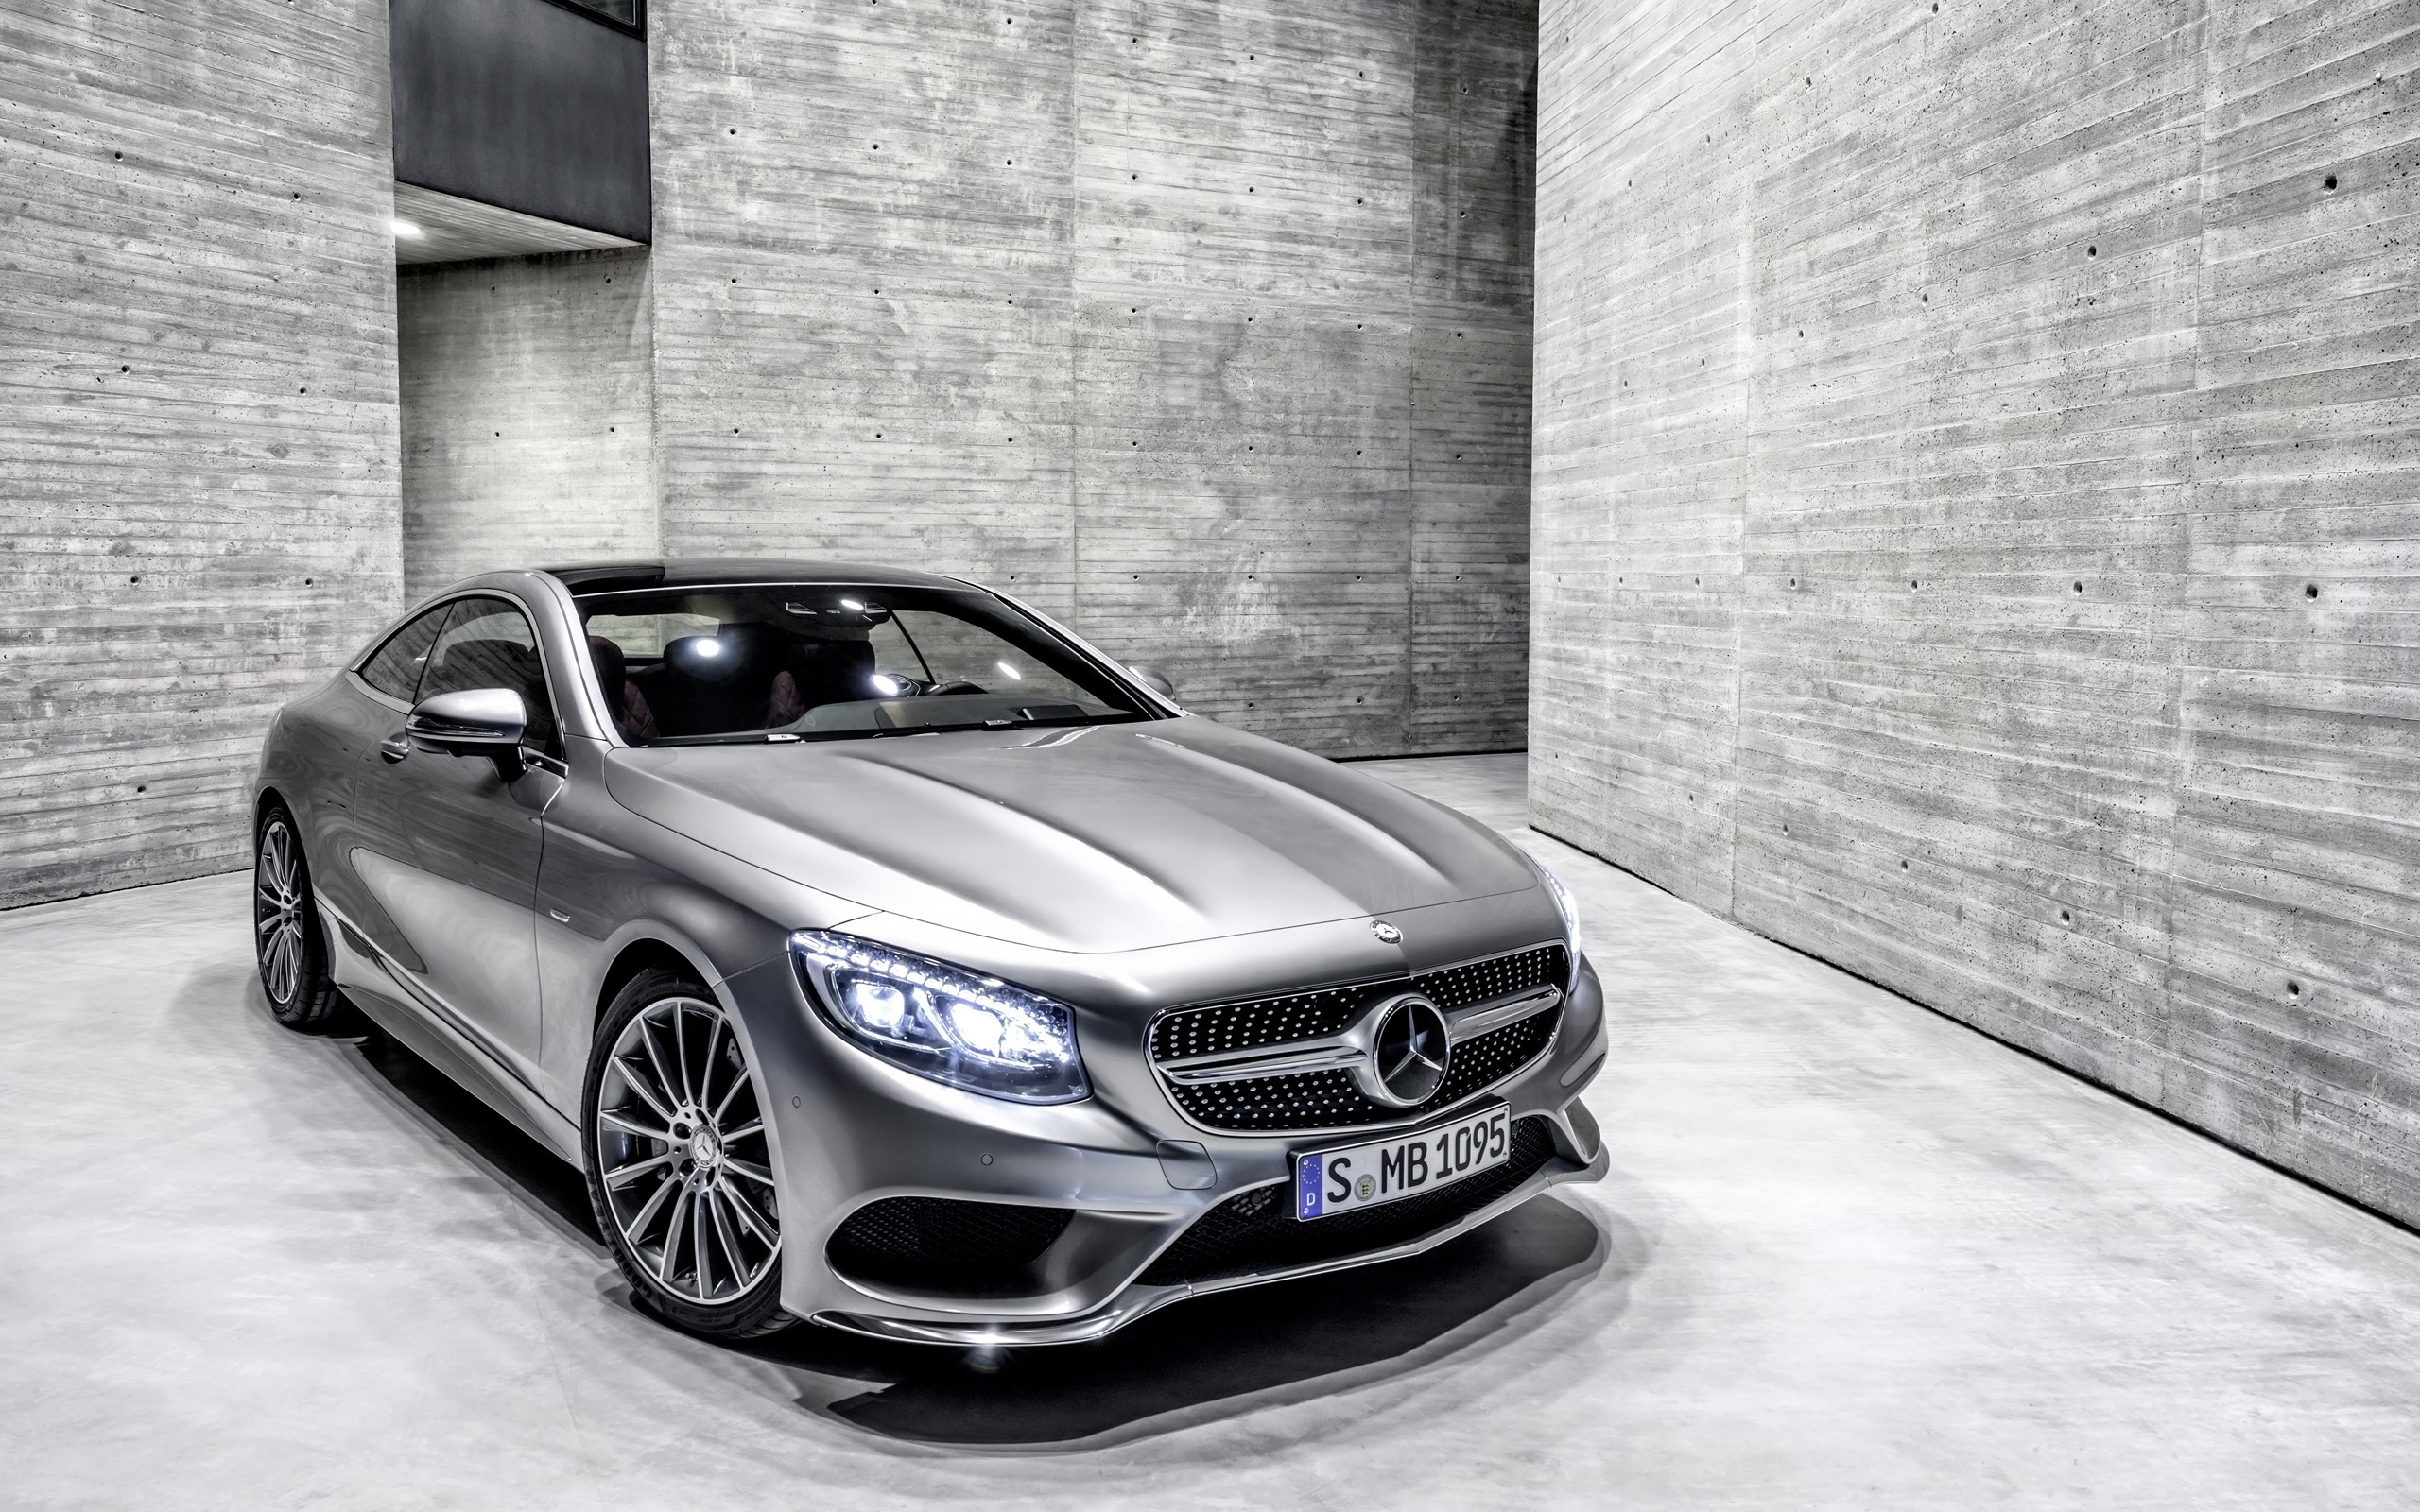 2014 mercedes benz s class coupe wallpaper hd car